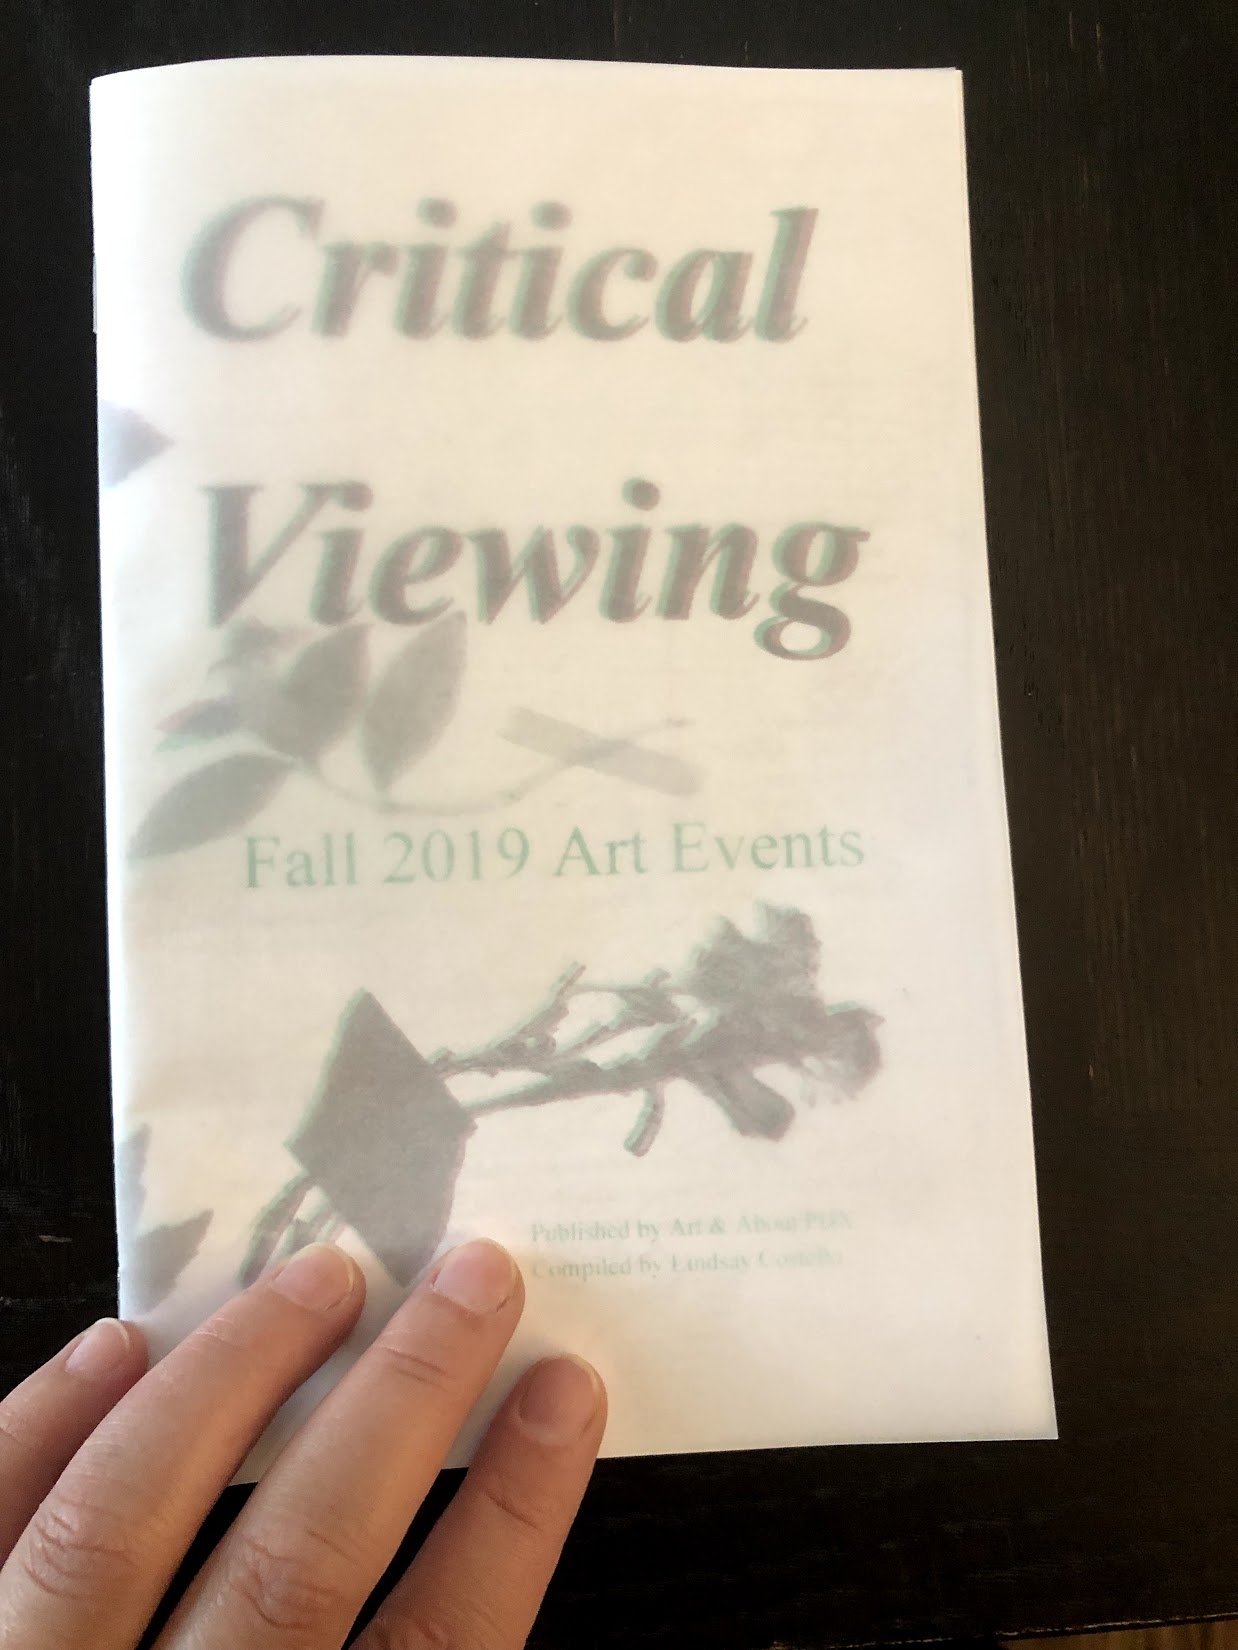 Critical Viewing Fall 2019 Art Events  publication